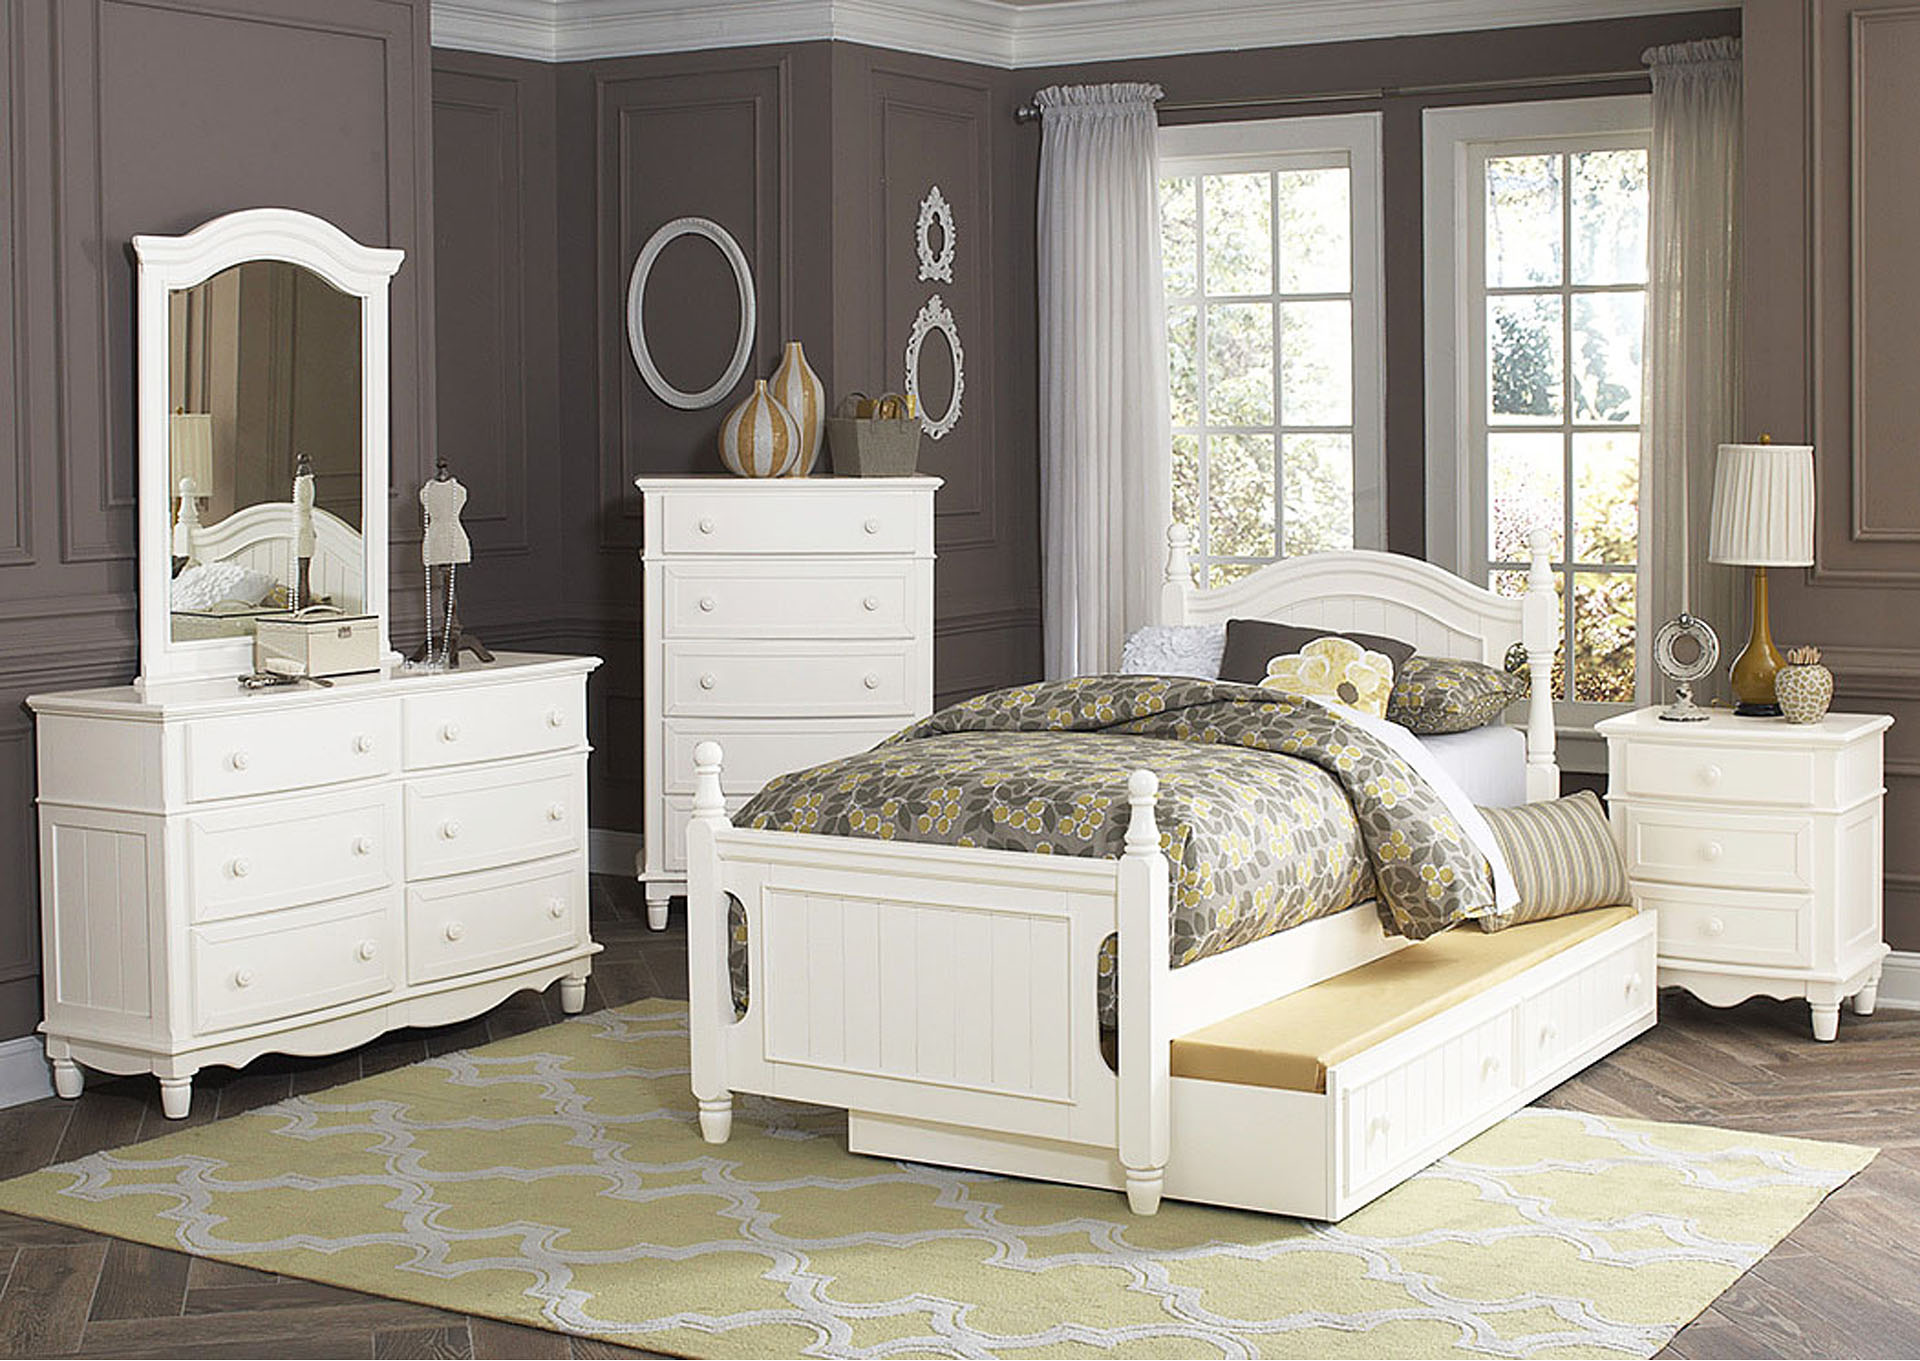 Clementine White Full Bed w/Trundle,Homelegance